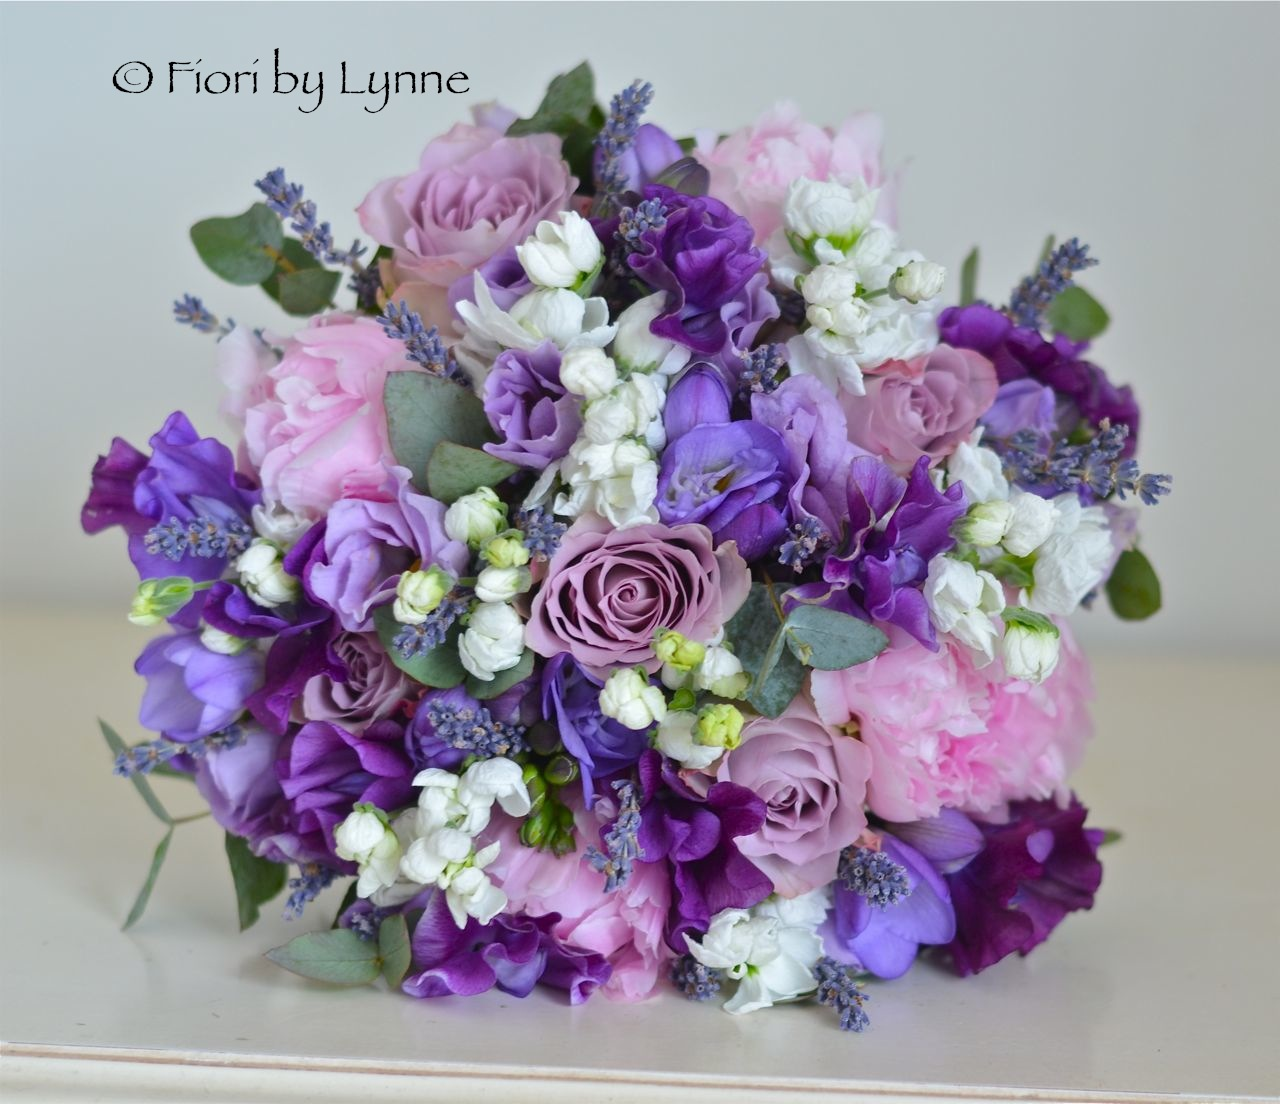 Pink Peonies Purple Sweet Peas Lavender Stocks Lisianthus And Freesia Make A Wonderful Early Summer Bouquet This Was Actually Late April Wedding But